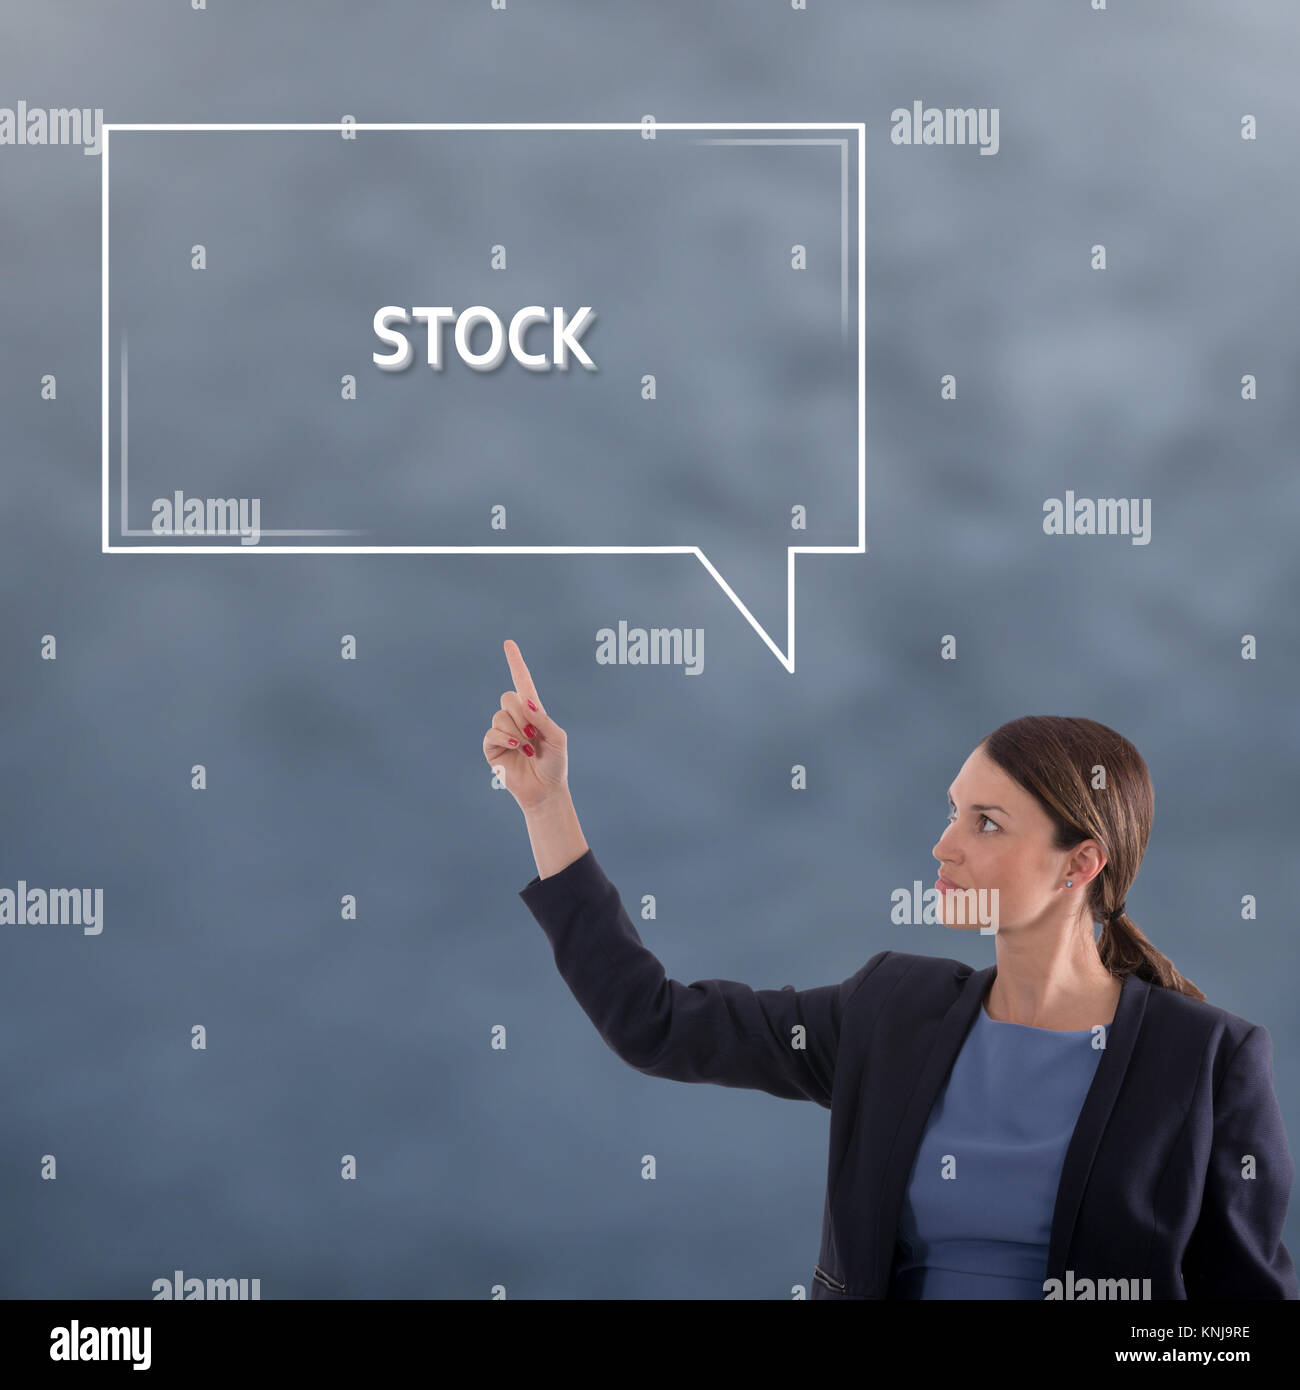 STOCK Business Concept. Business Woman Graphic Concept Stock Photo